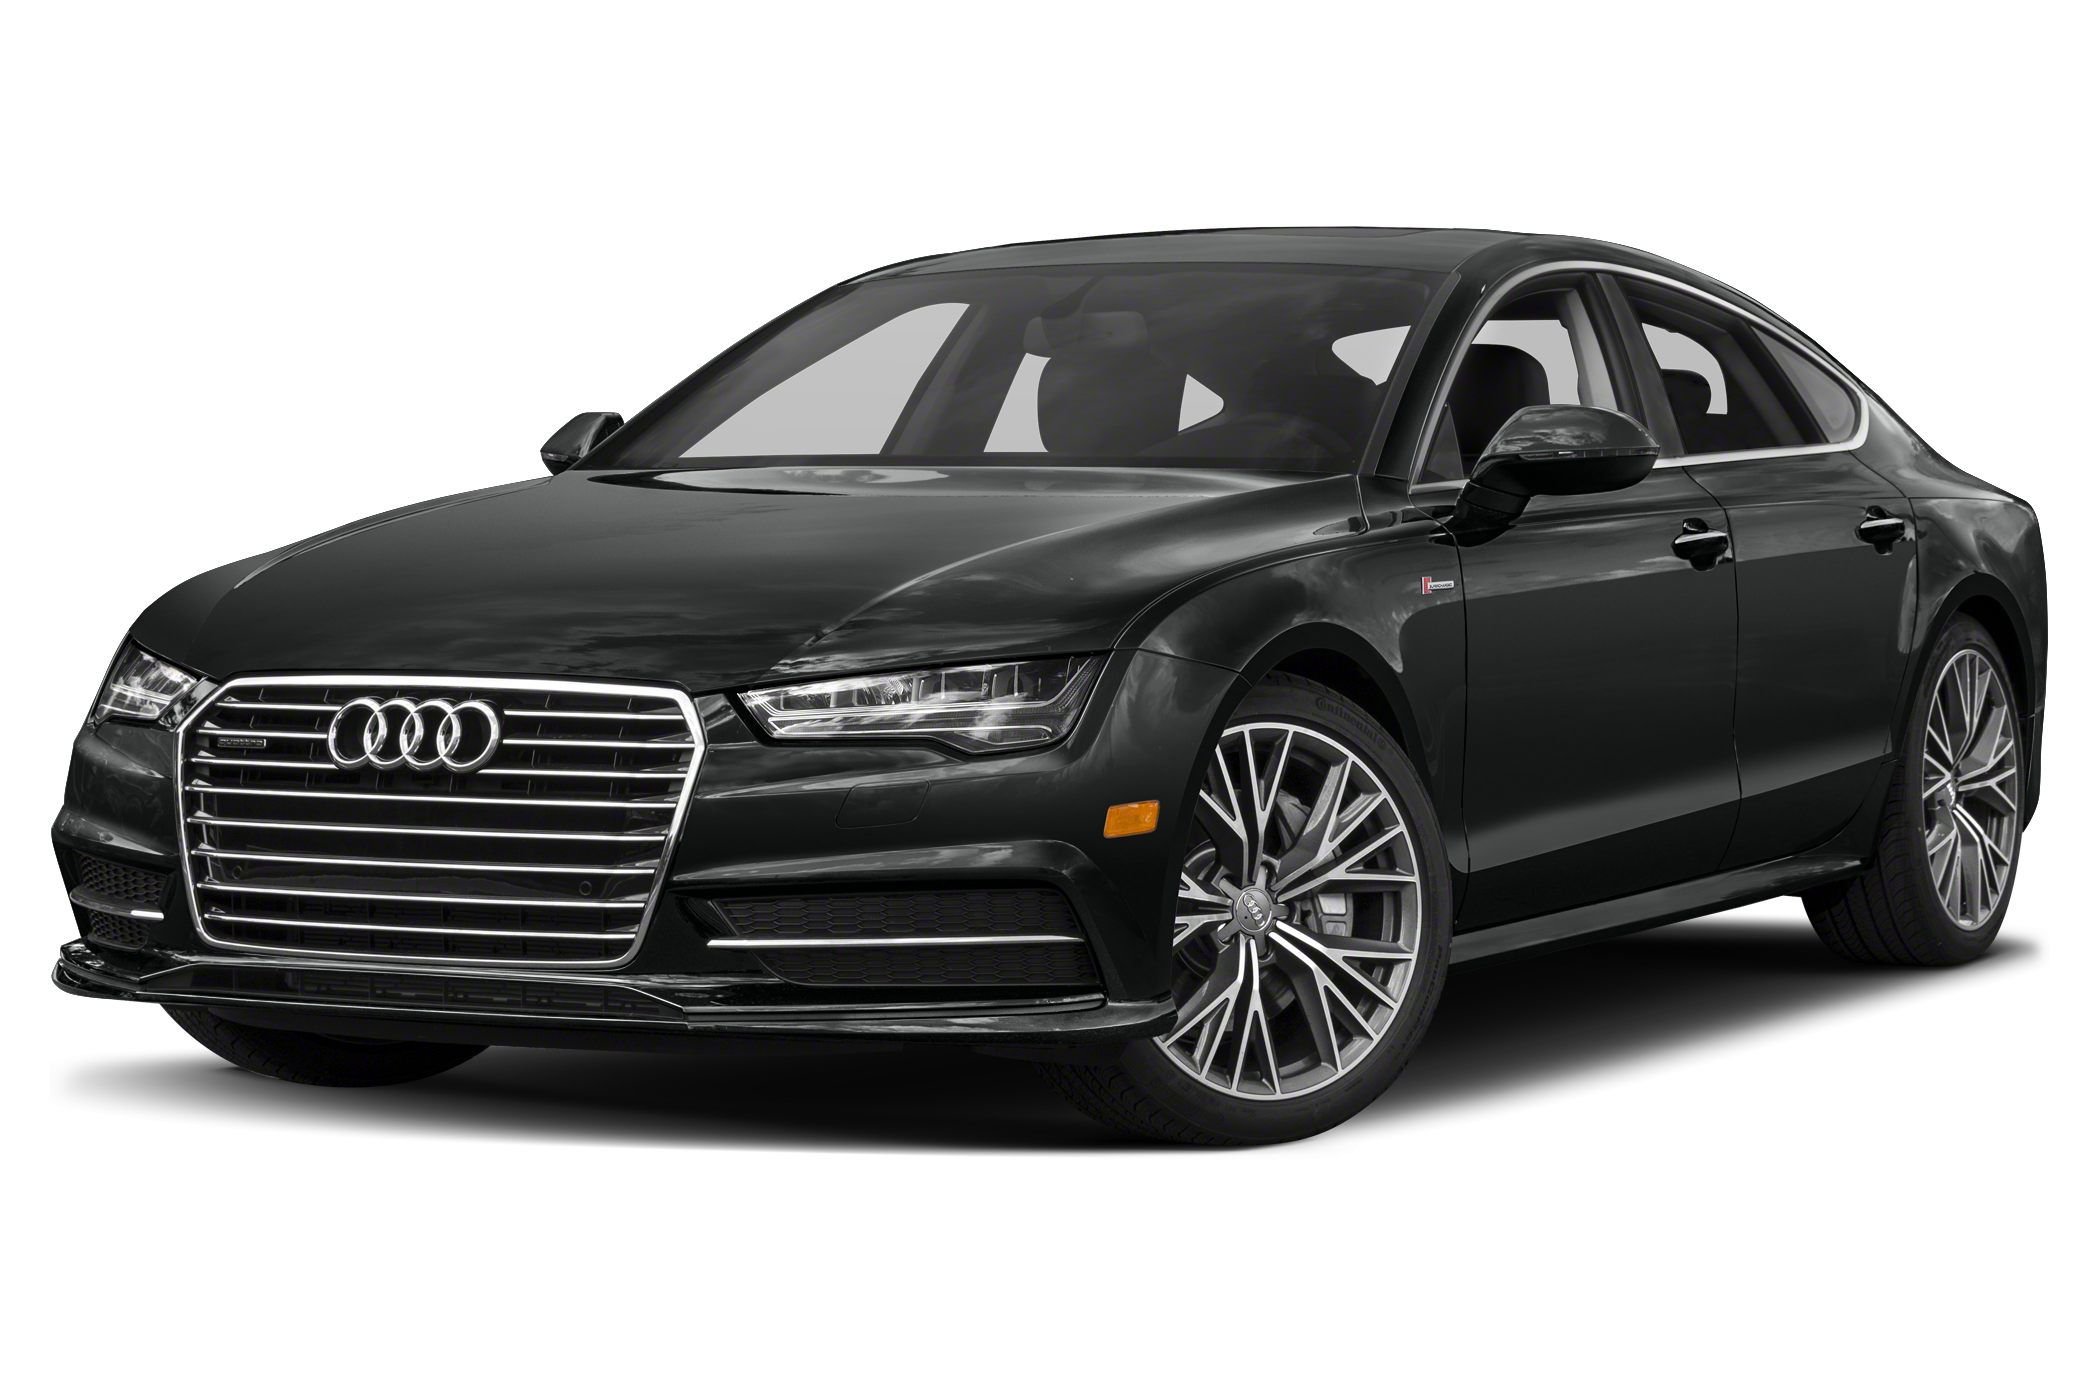 picture xcode for appealing dealer are luxury heres of image audi south uk repost car and specials popular lease vt burlington leases why deals bullshit total ideas lot a awesome